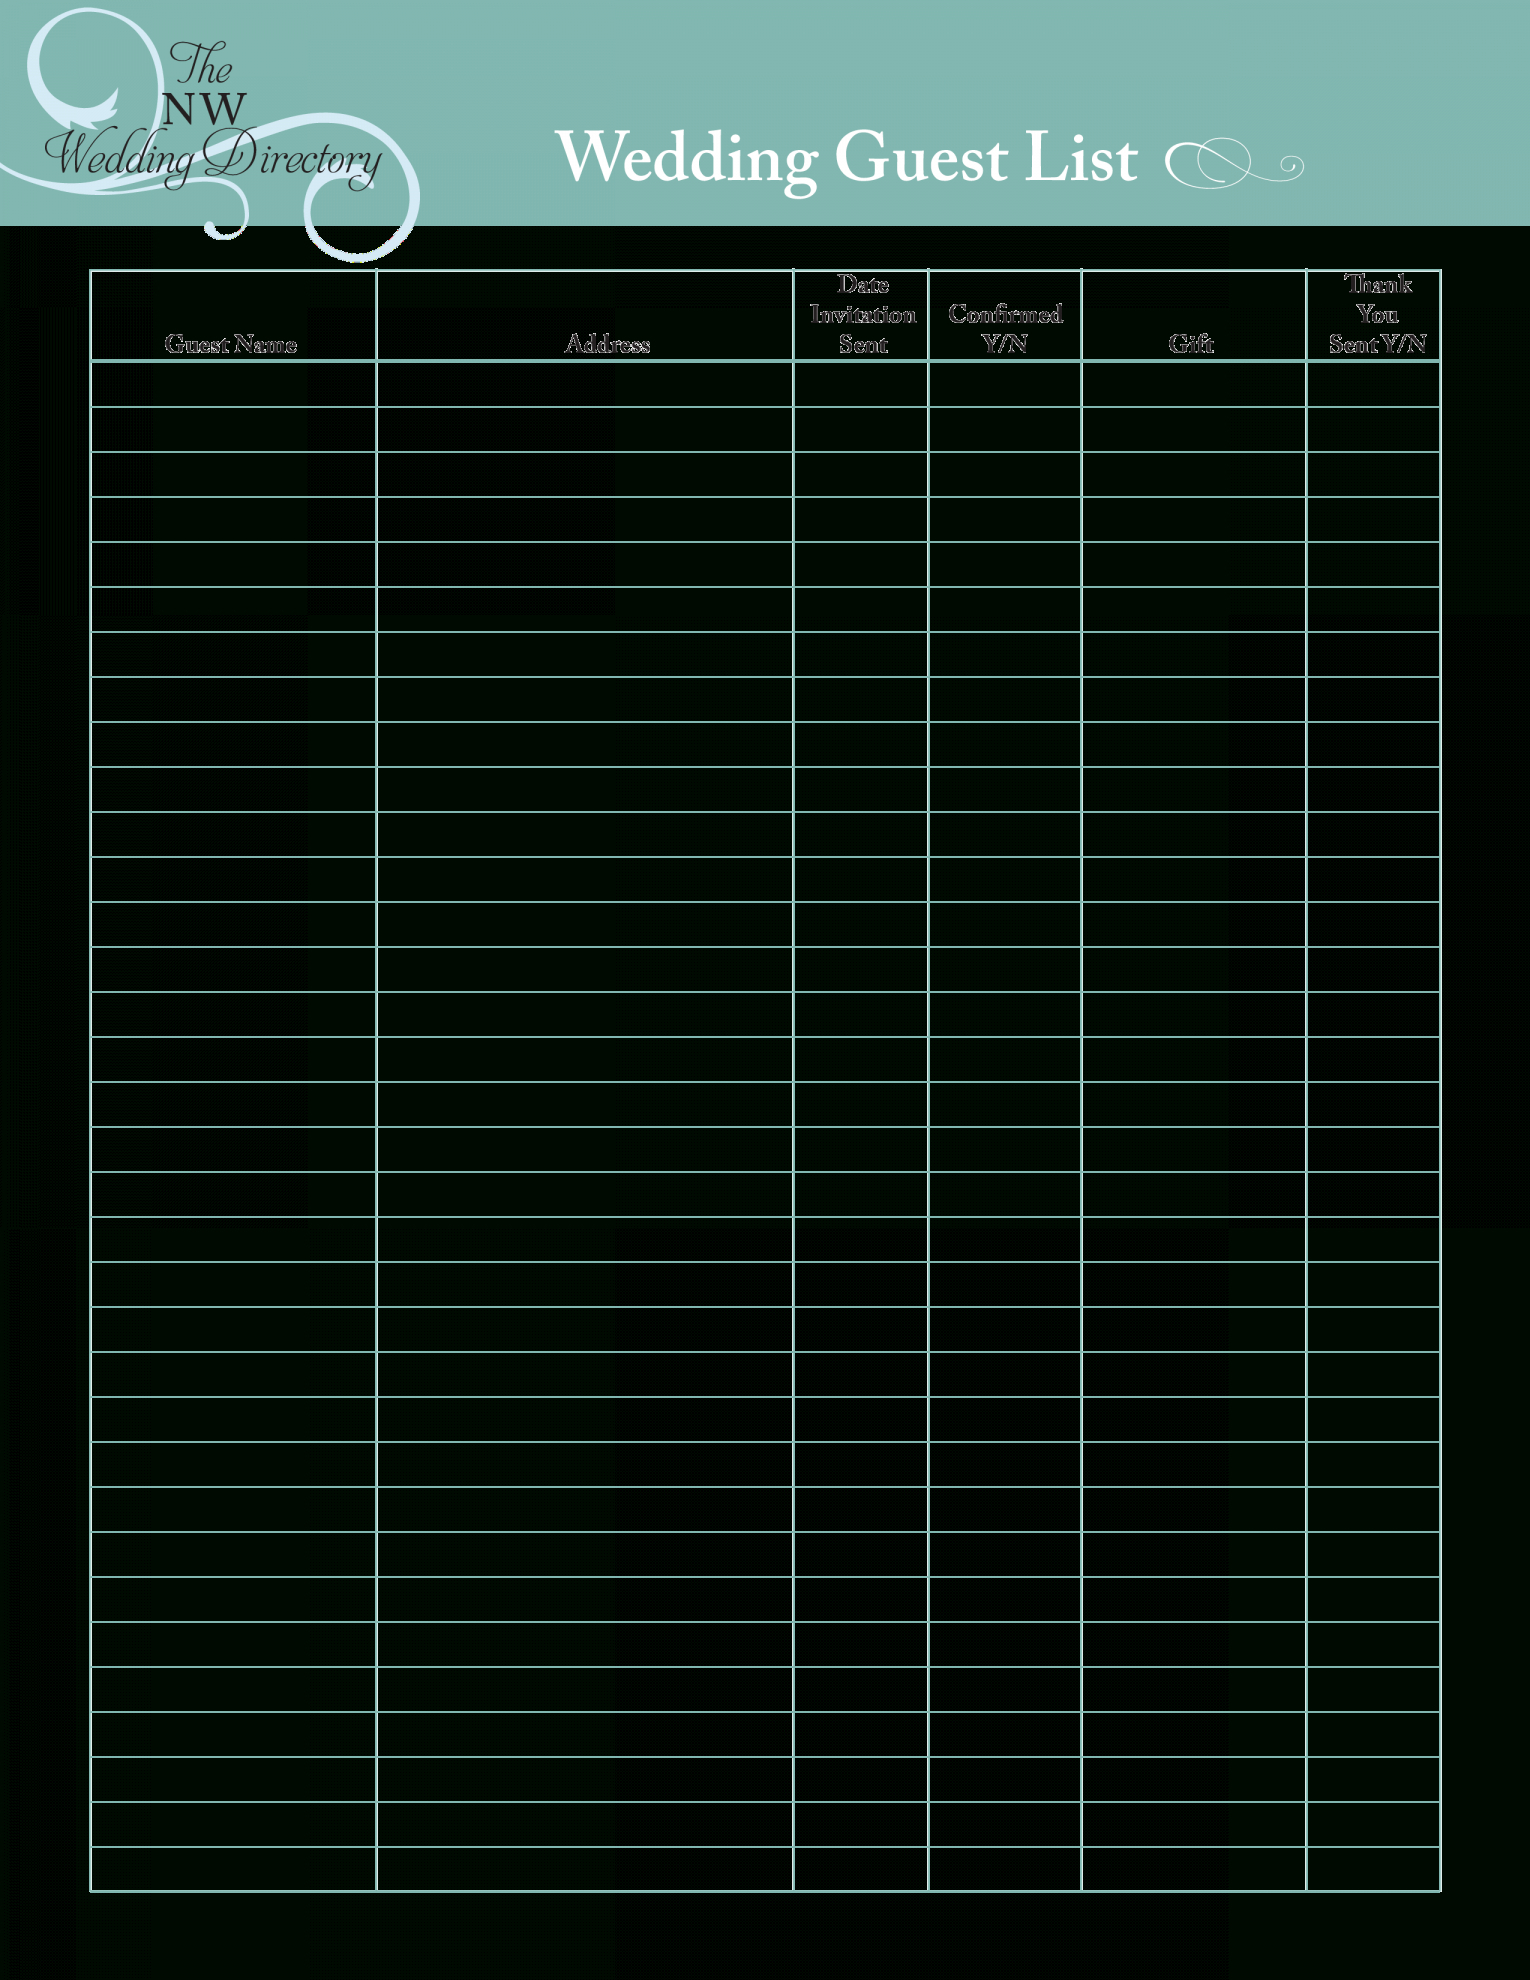 Guest List Spreadsheet For Free Wedding Guest List  Templates At Allbusinesstemplates